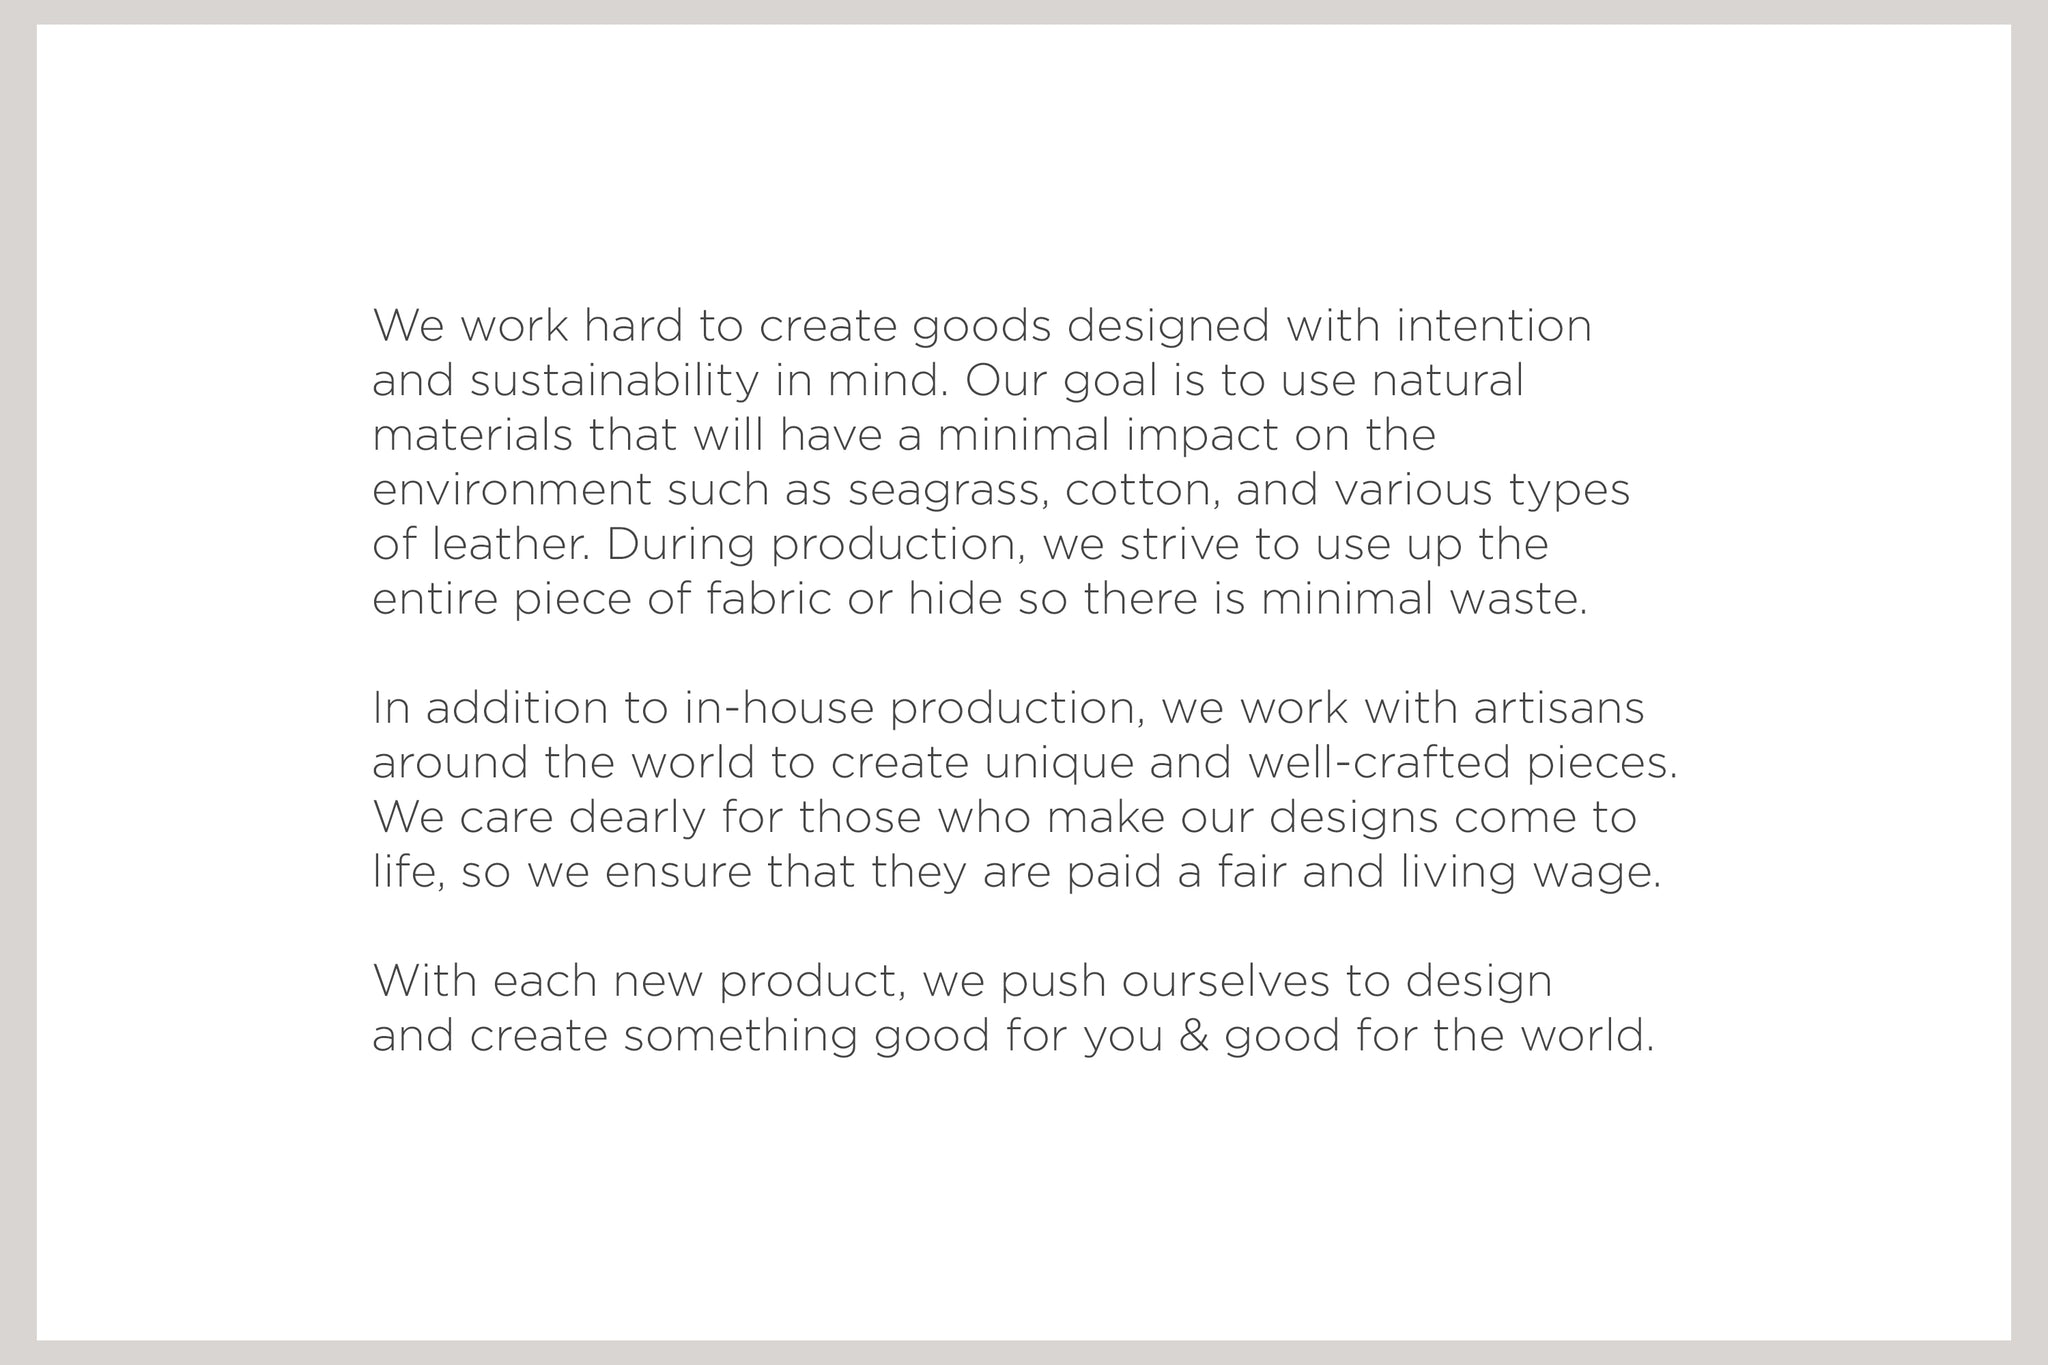 We work hard to create goods designed with intention and sustainability in mind. Our goal is to use natural  materials that will have a minimal impact on the environment such as seagrass, cotton, and various types of leather. During production, we strive to use up the entire piece of fabric or hide so there is minimal waste.  In addition to in-house production, we work with artisans around the world to create unique and well-created pieces. We care dearly for those who make our designs come to life, so we pay them a fair and living wage.  With each new product, we push ourselves to design and create something good for you & good for the world.